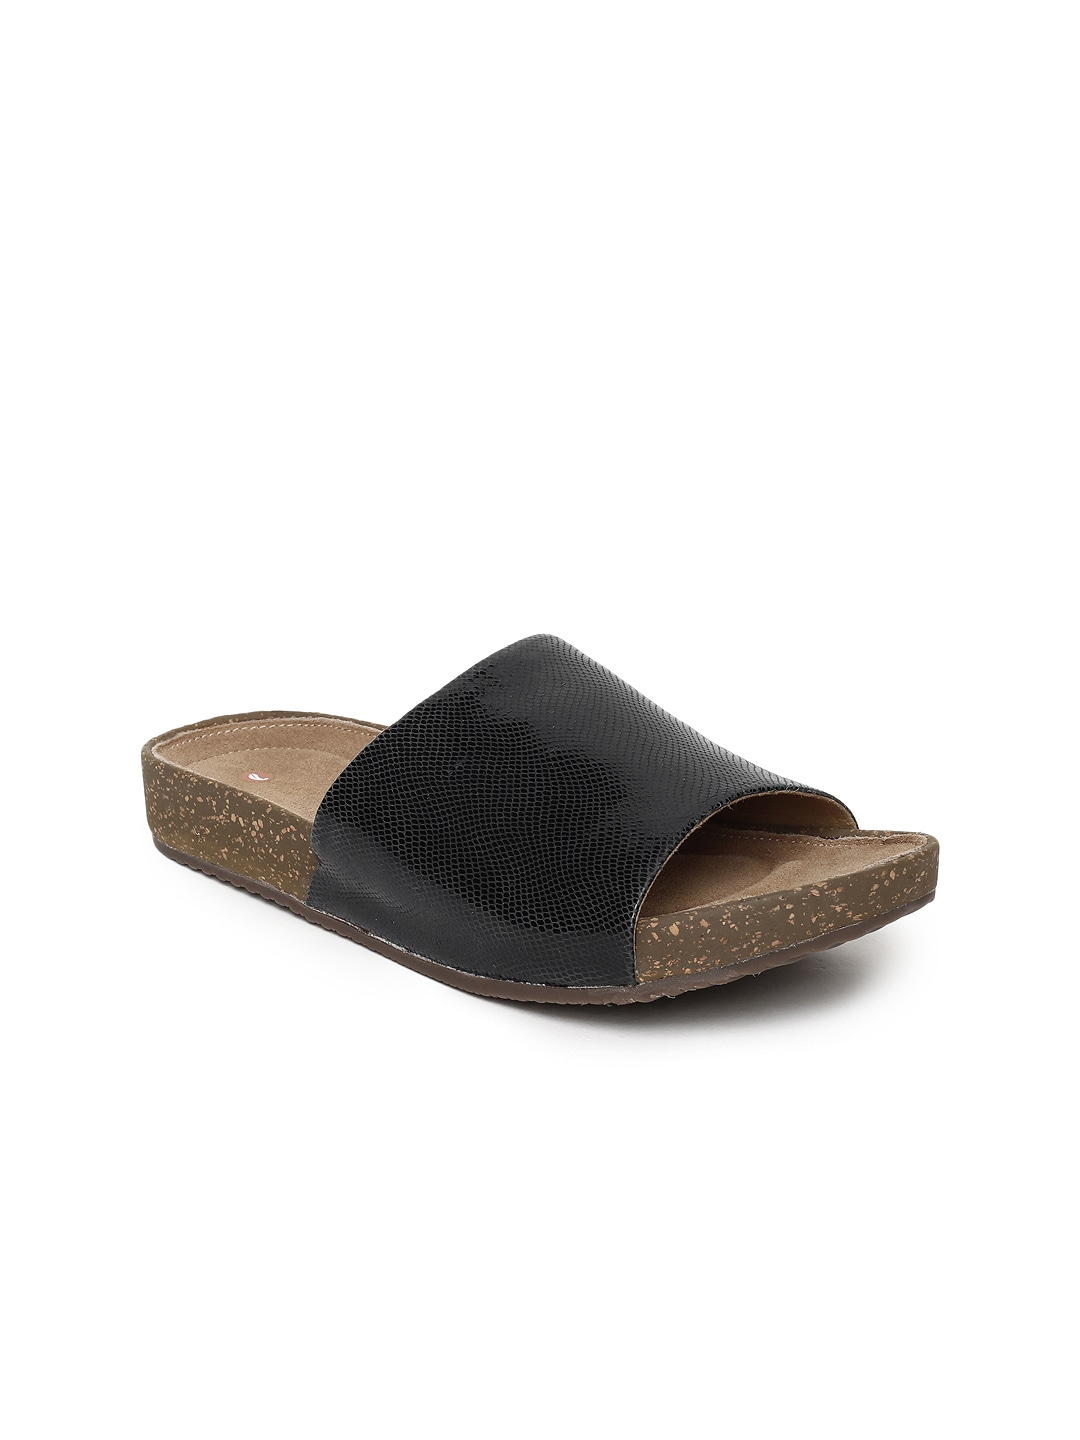 f6ce652cd5c3 CLARKS - Exclusive Clarks Shoes Online Store in India - Myntra